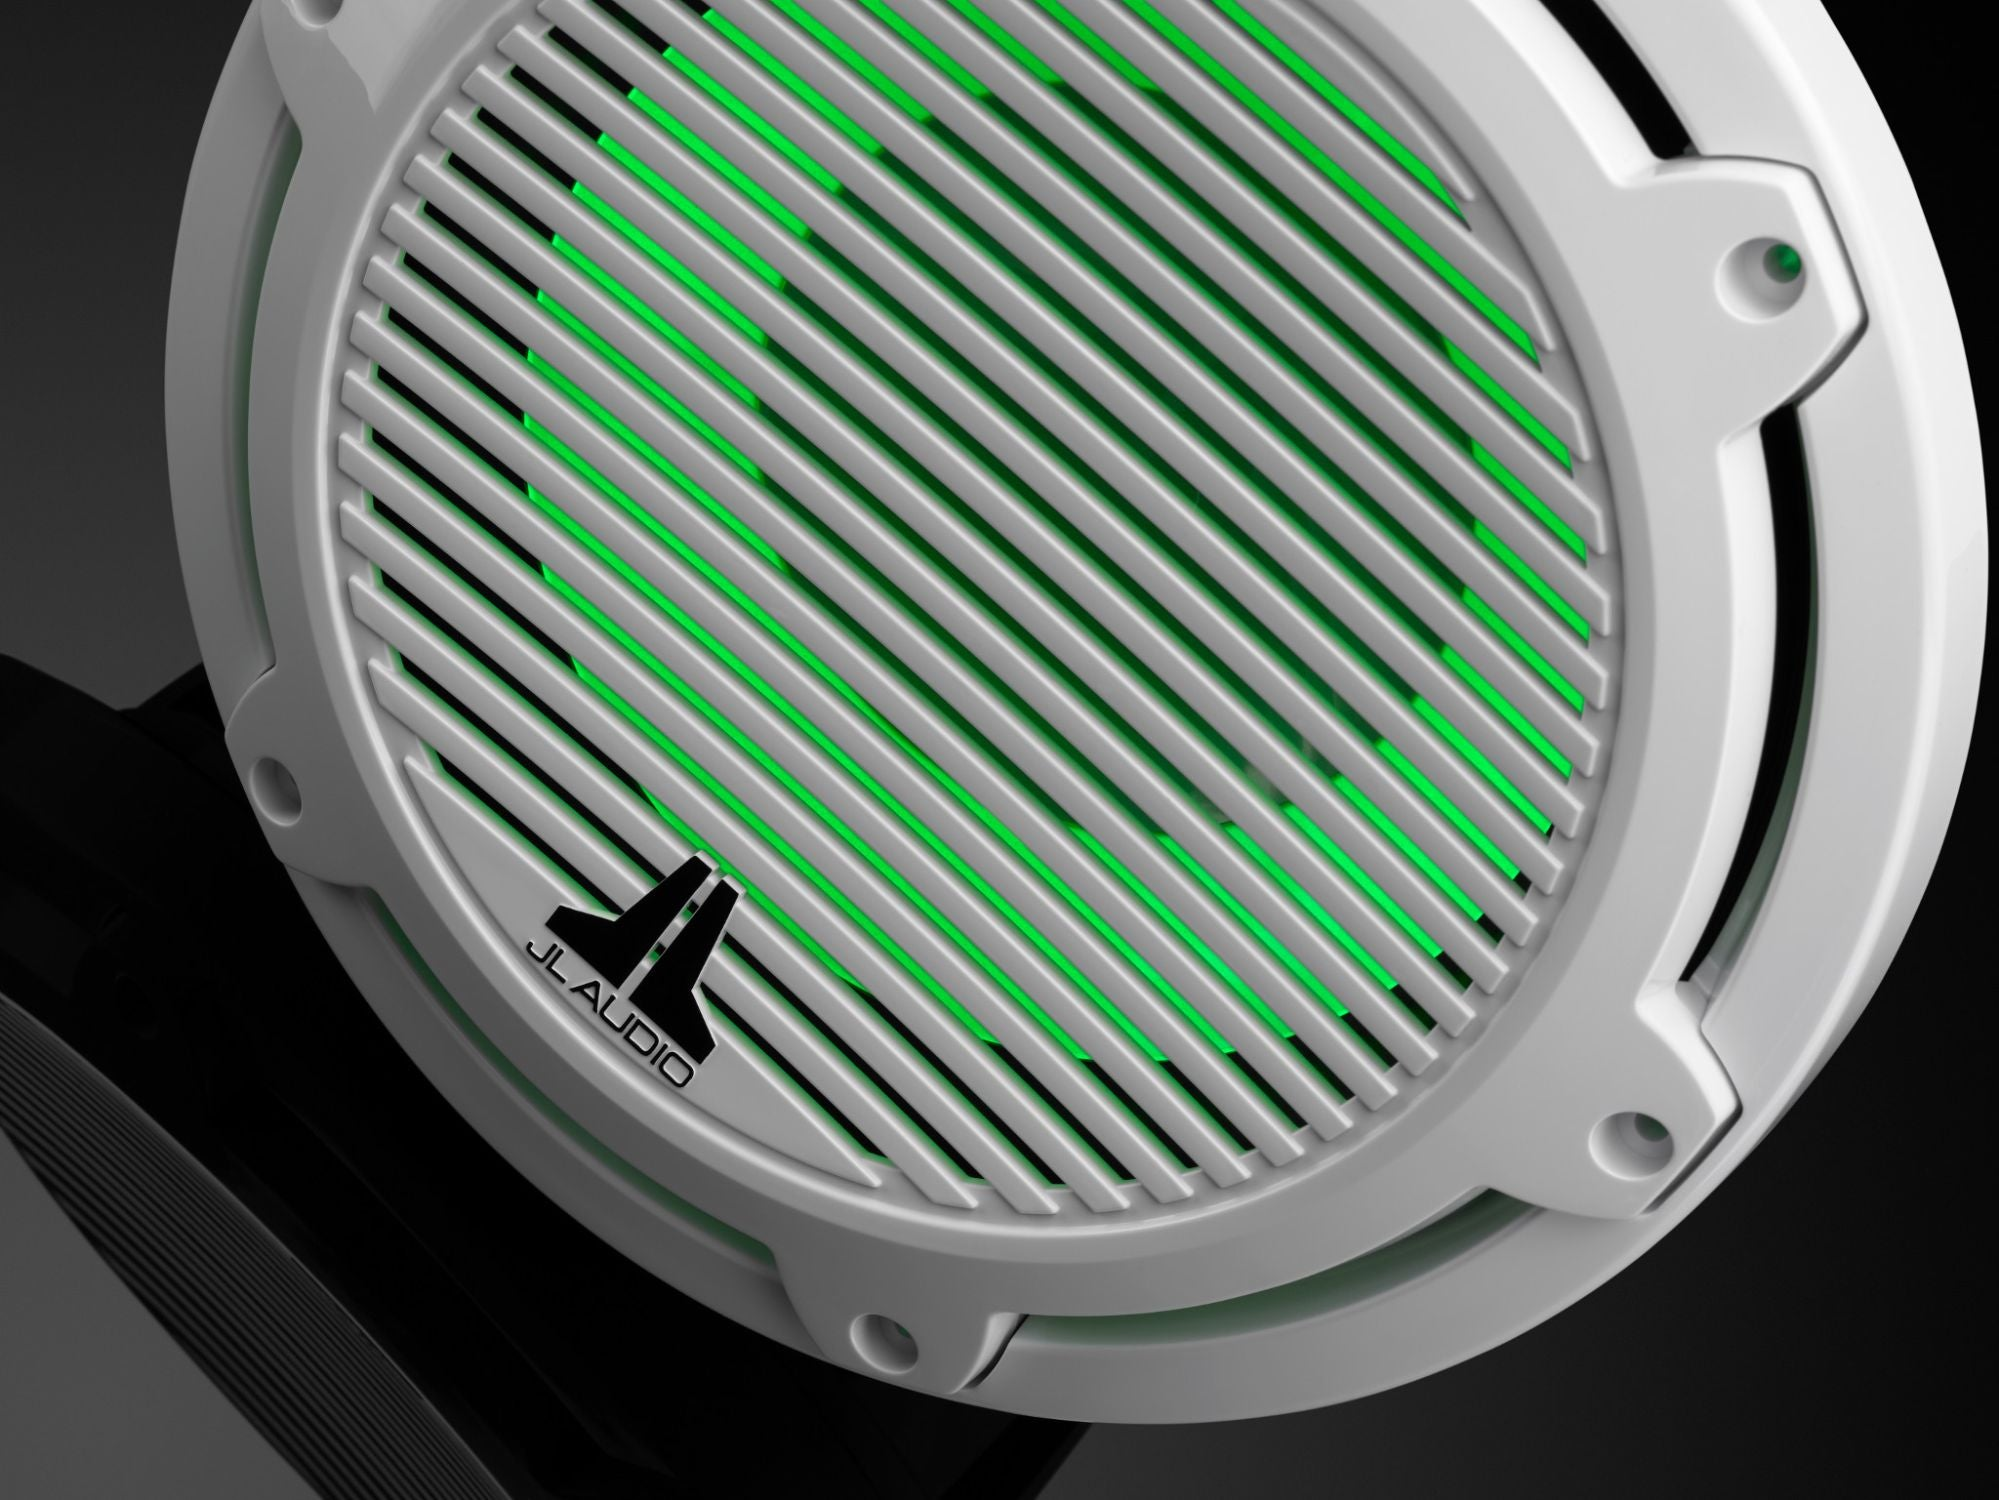 Detail of M6-10IB-C-GwGw-i-4 Subwoofer Lit with Green